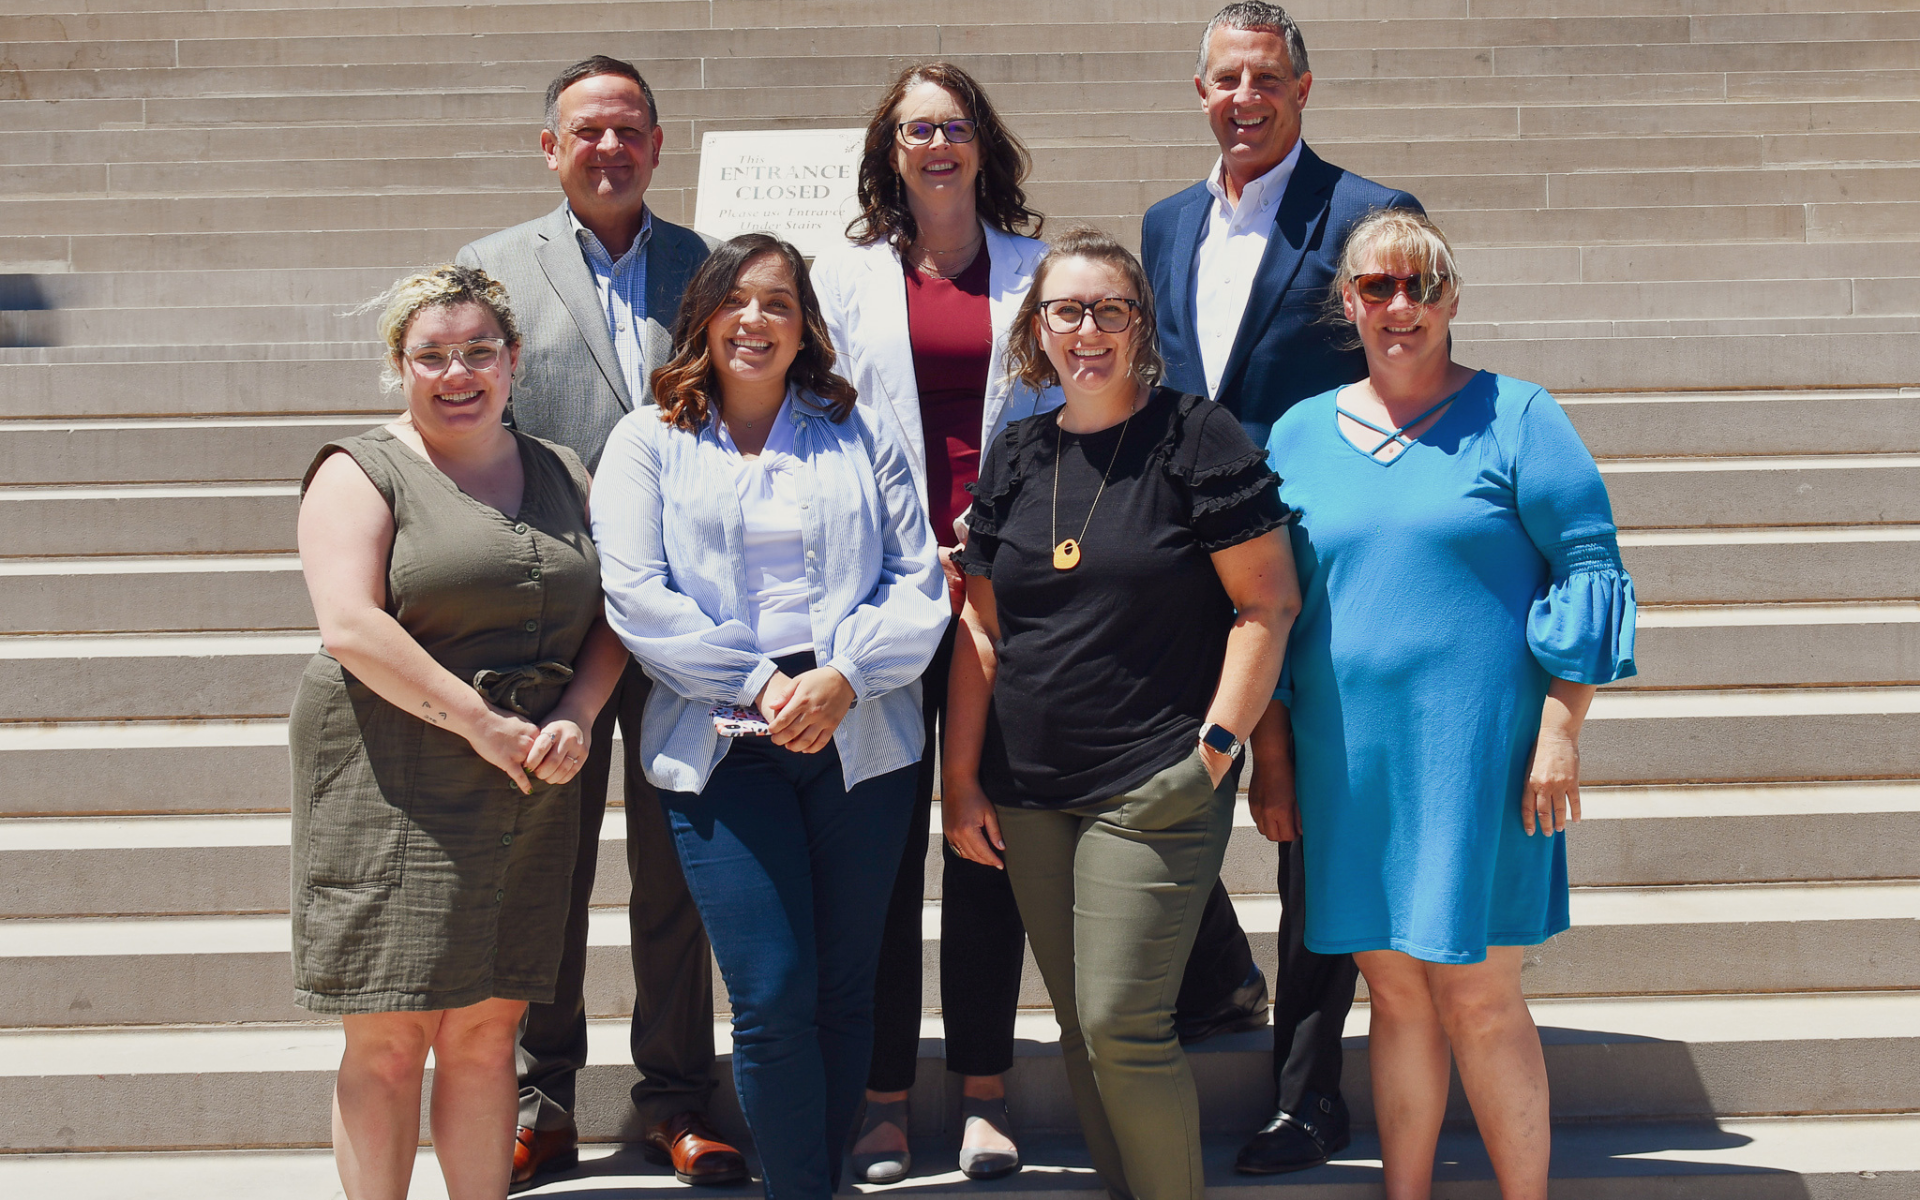 A photo of the MAPSA team standing on the Michigan Capitol steps.